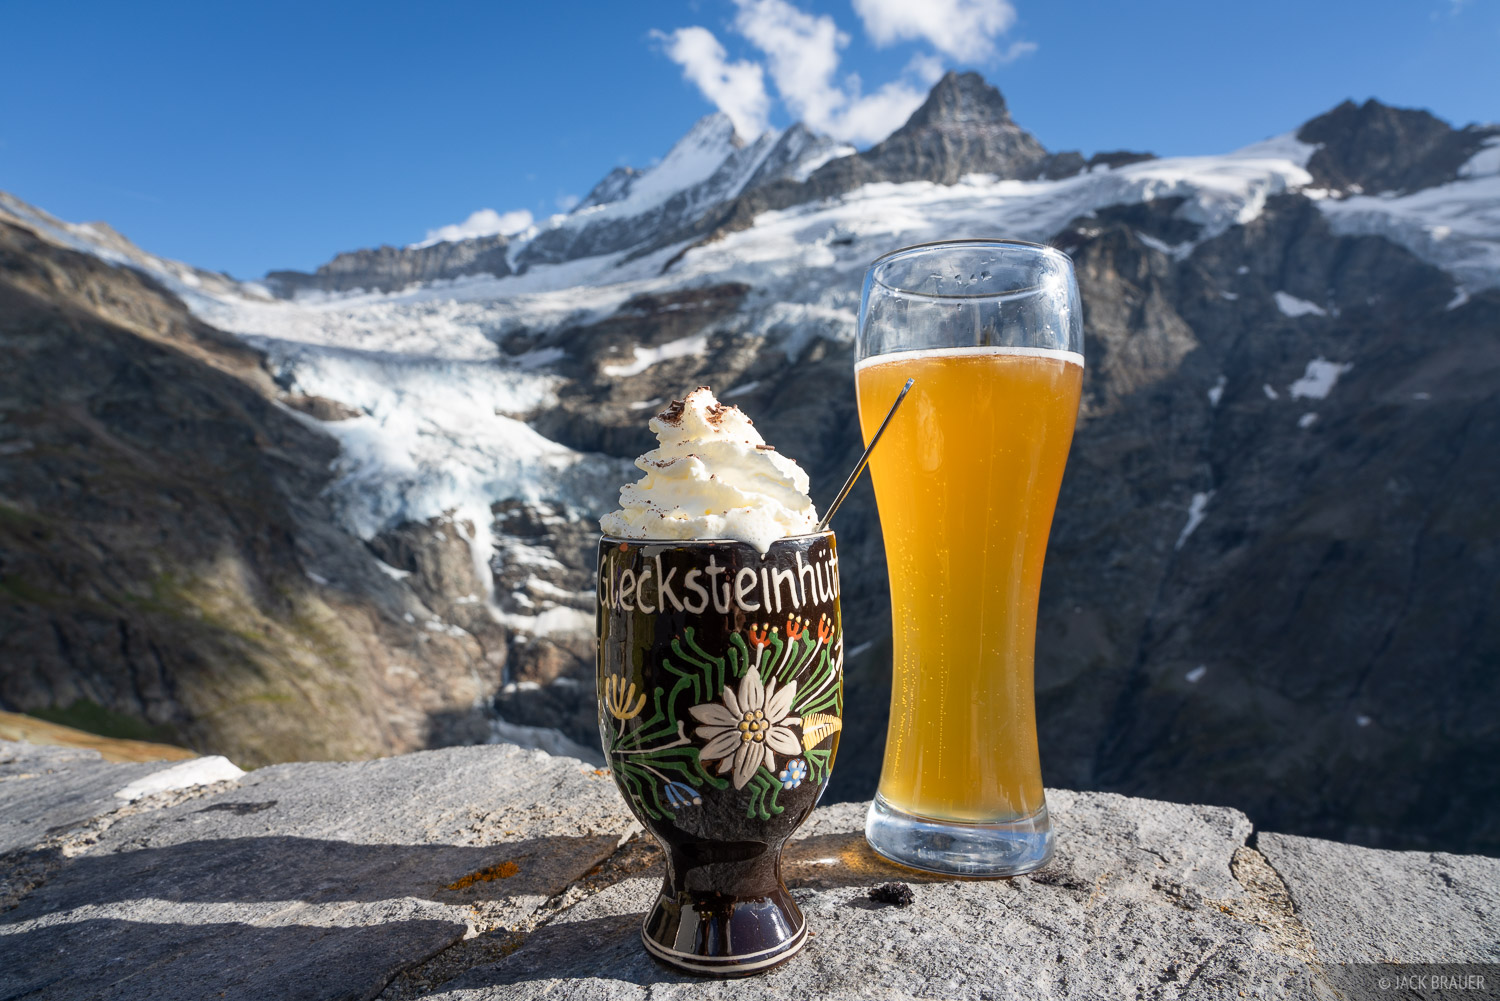 Bernese Alps, Glecksteinhütte, Schreckhorn, Switzerland, beer, Bernese Oberland, photo